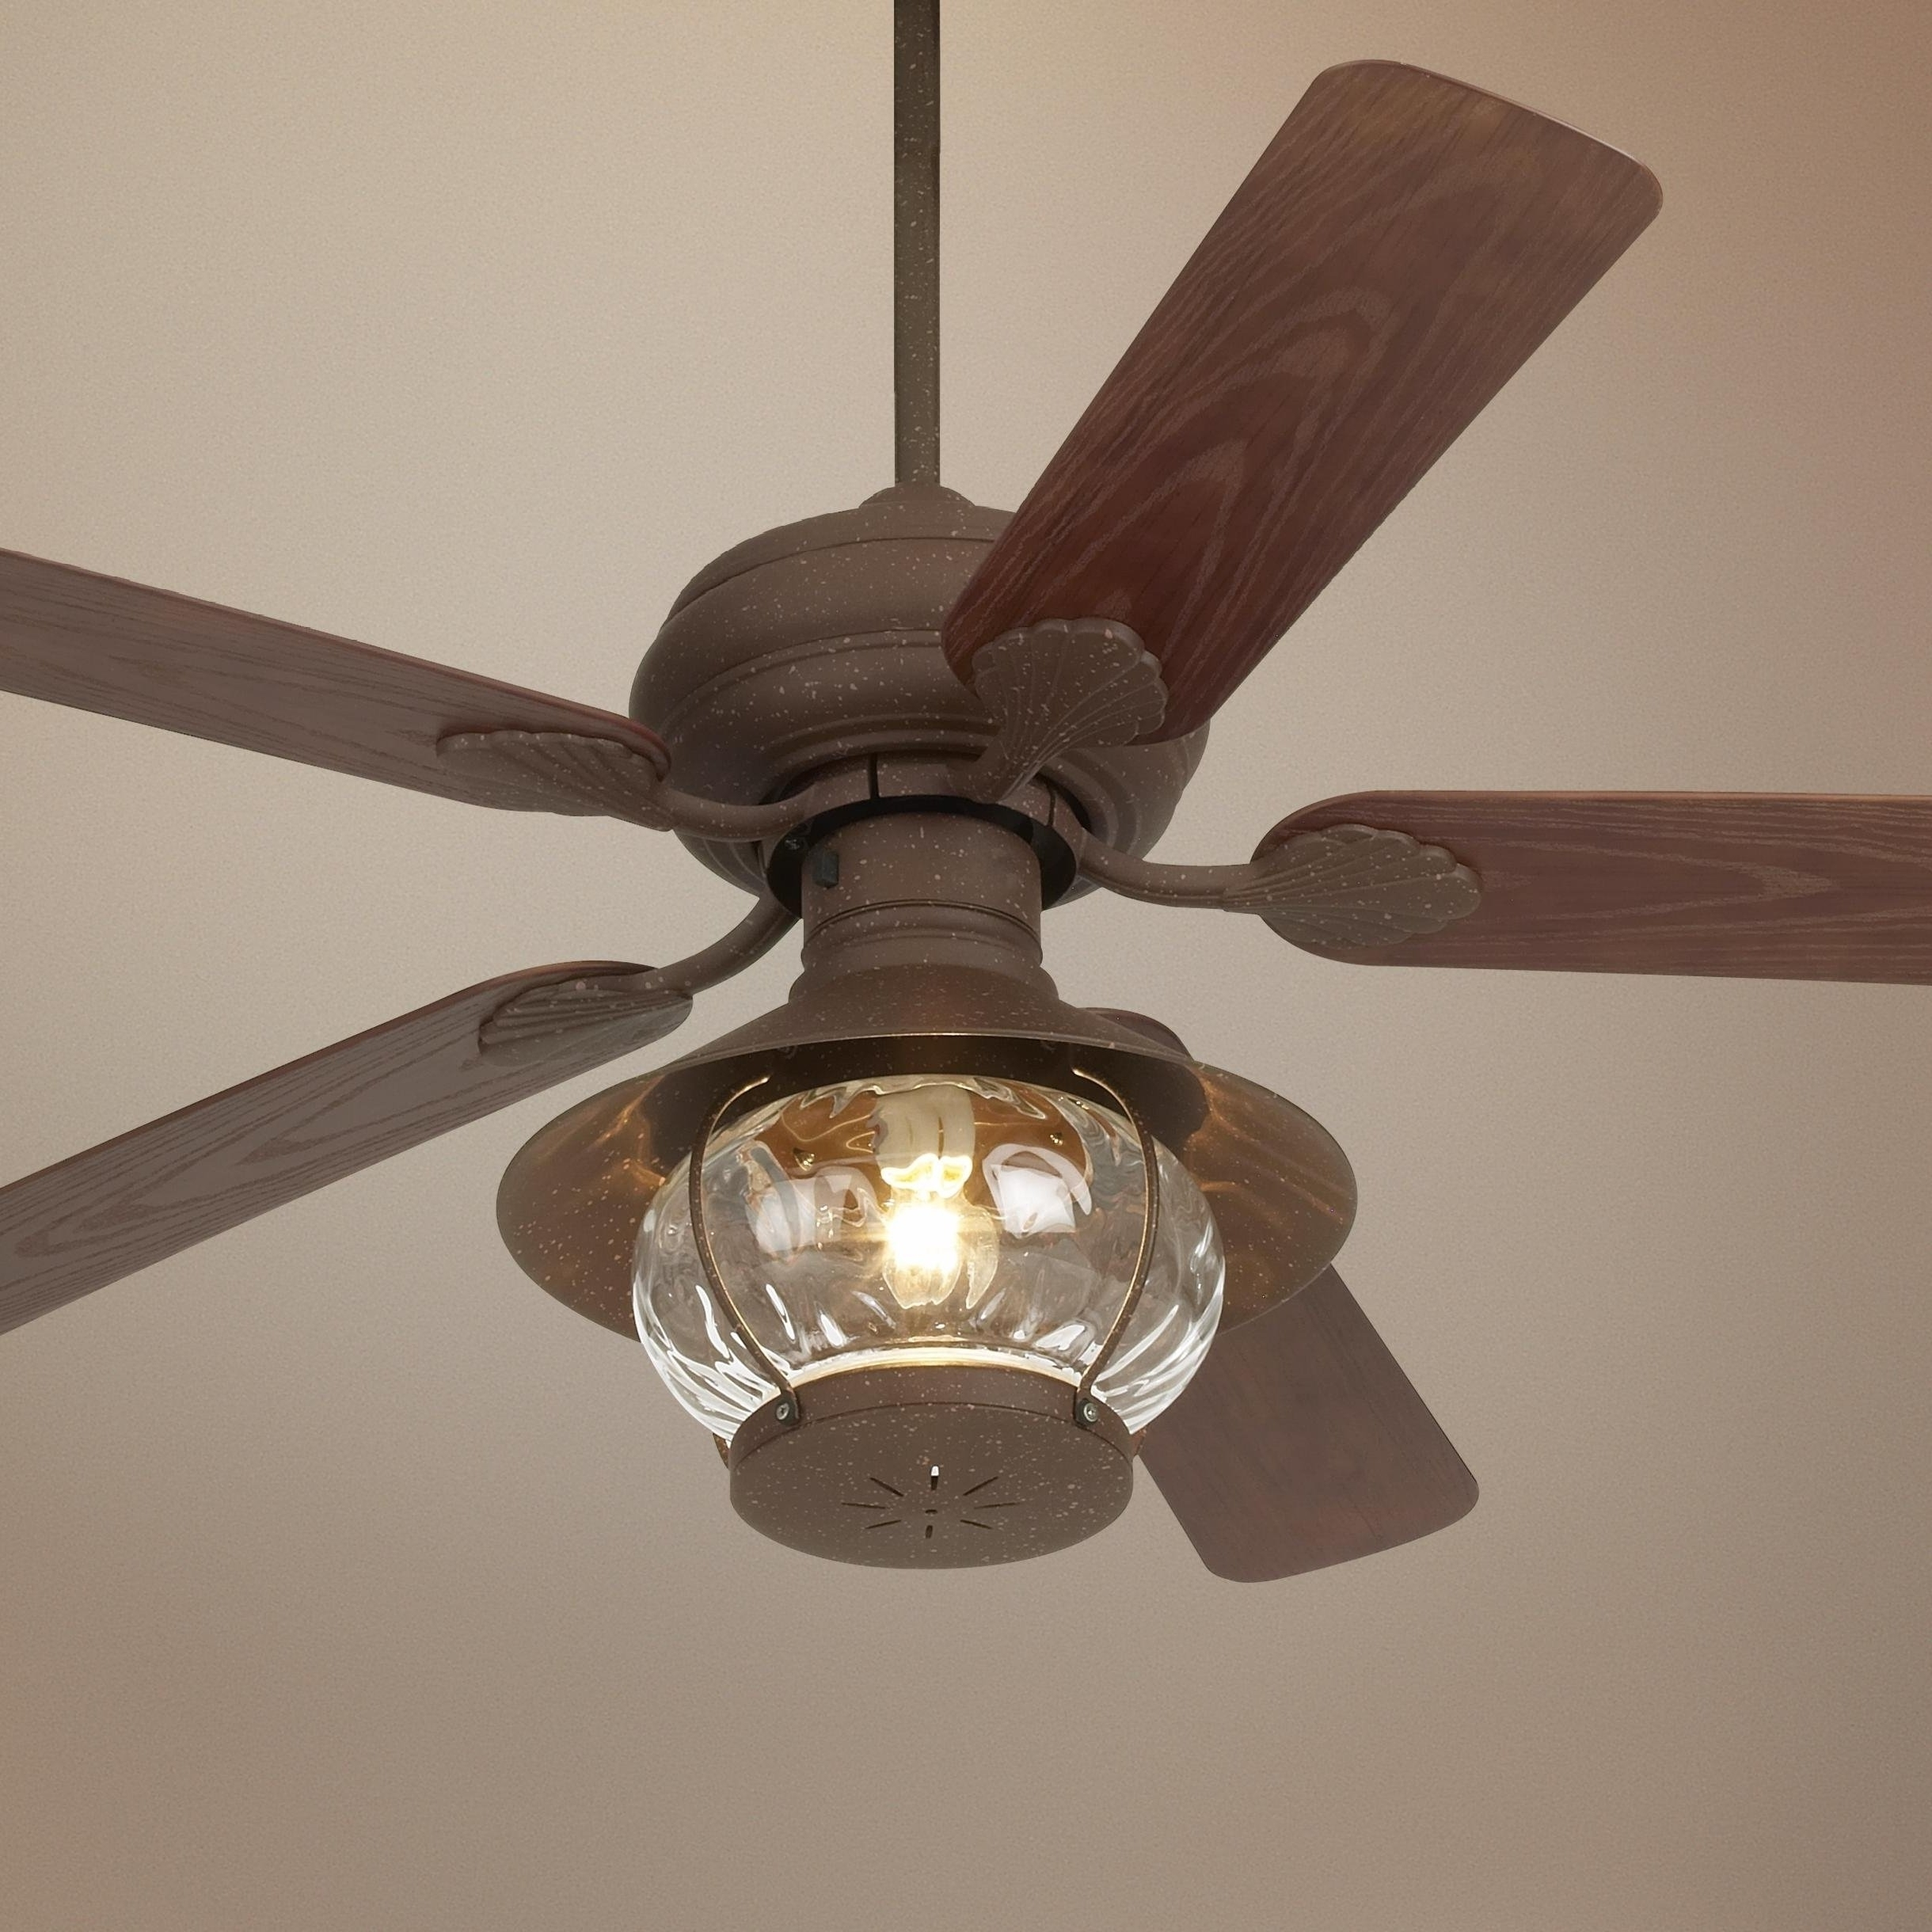 Most Popular Rustic Outdoor Ceiling Fans Pertaining To Radiant Ceiling Rustic Outdoor Ceiling Fans Western Light Pertaining (View 6 of 20)